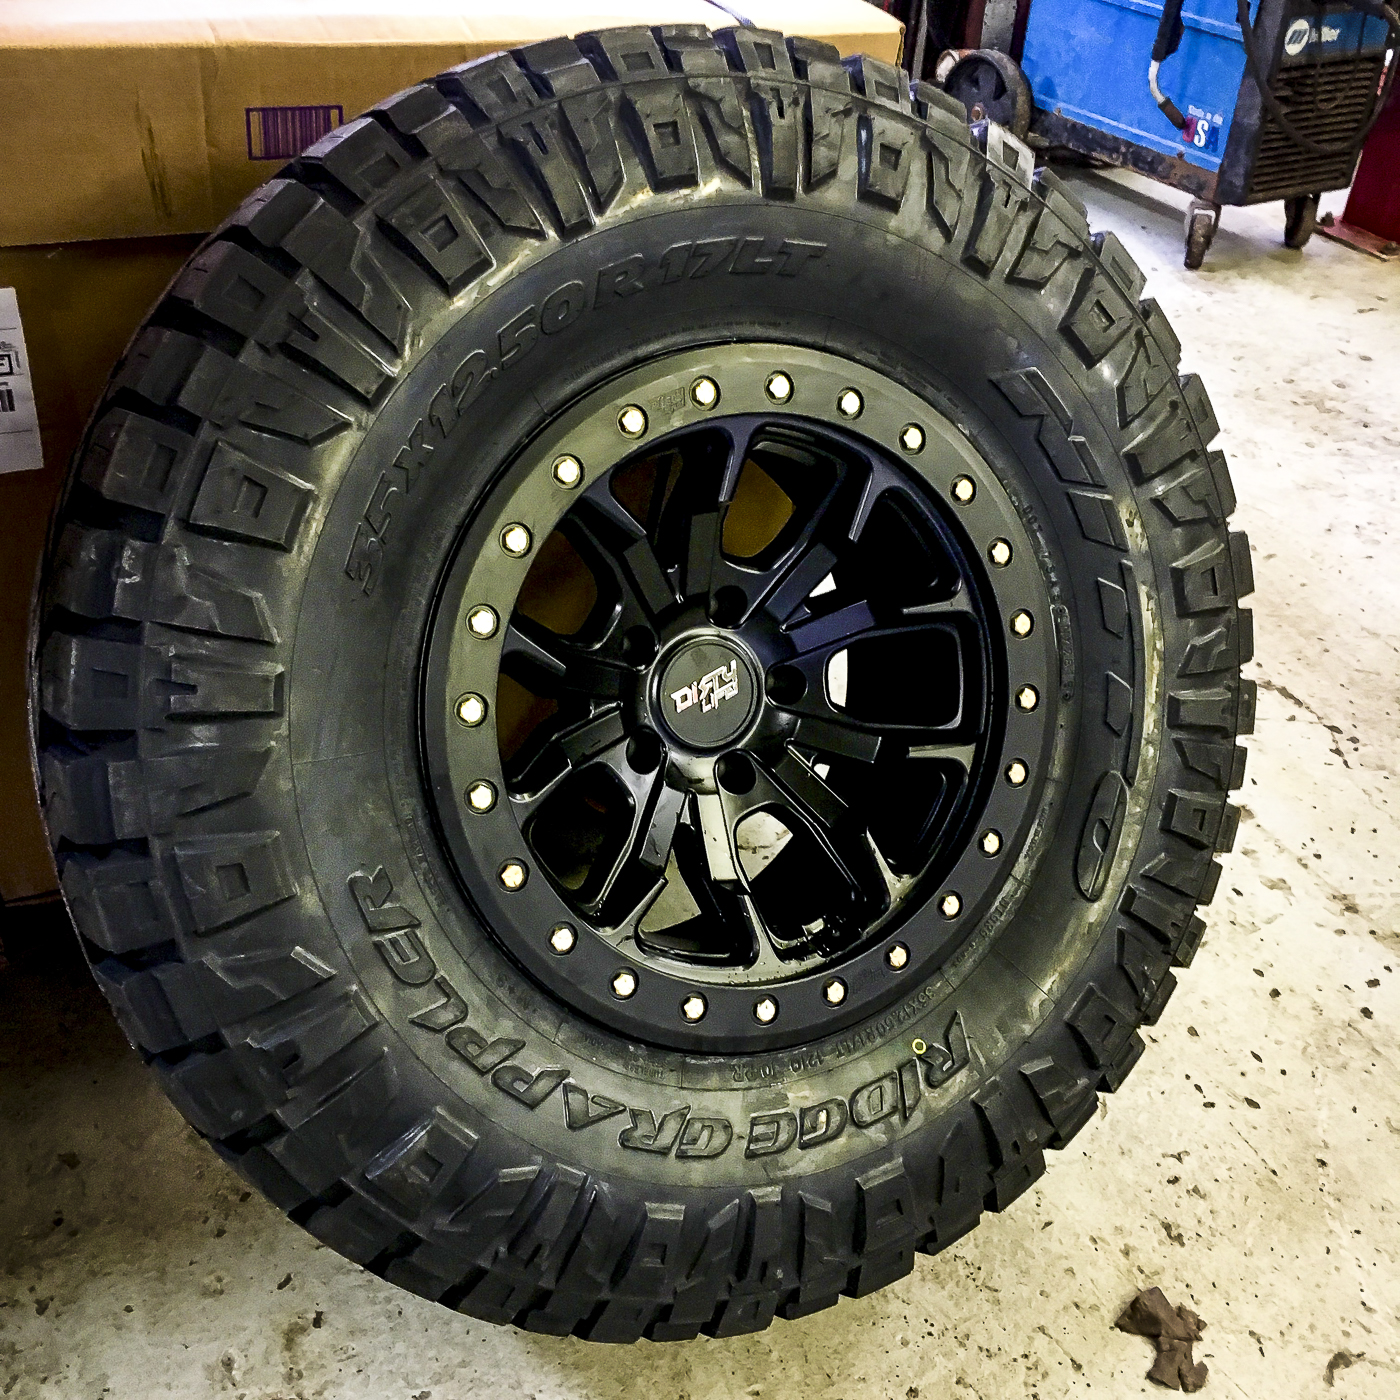 TIRES: Nitto Ridge Grapplers 35x12.50x17. WHEELS: Dirty Life Race 9303's…